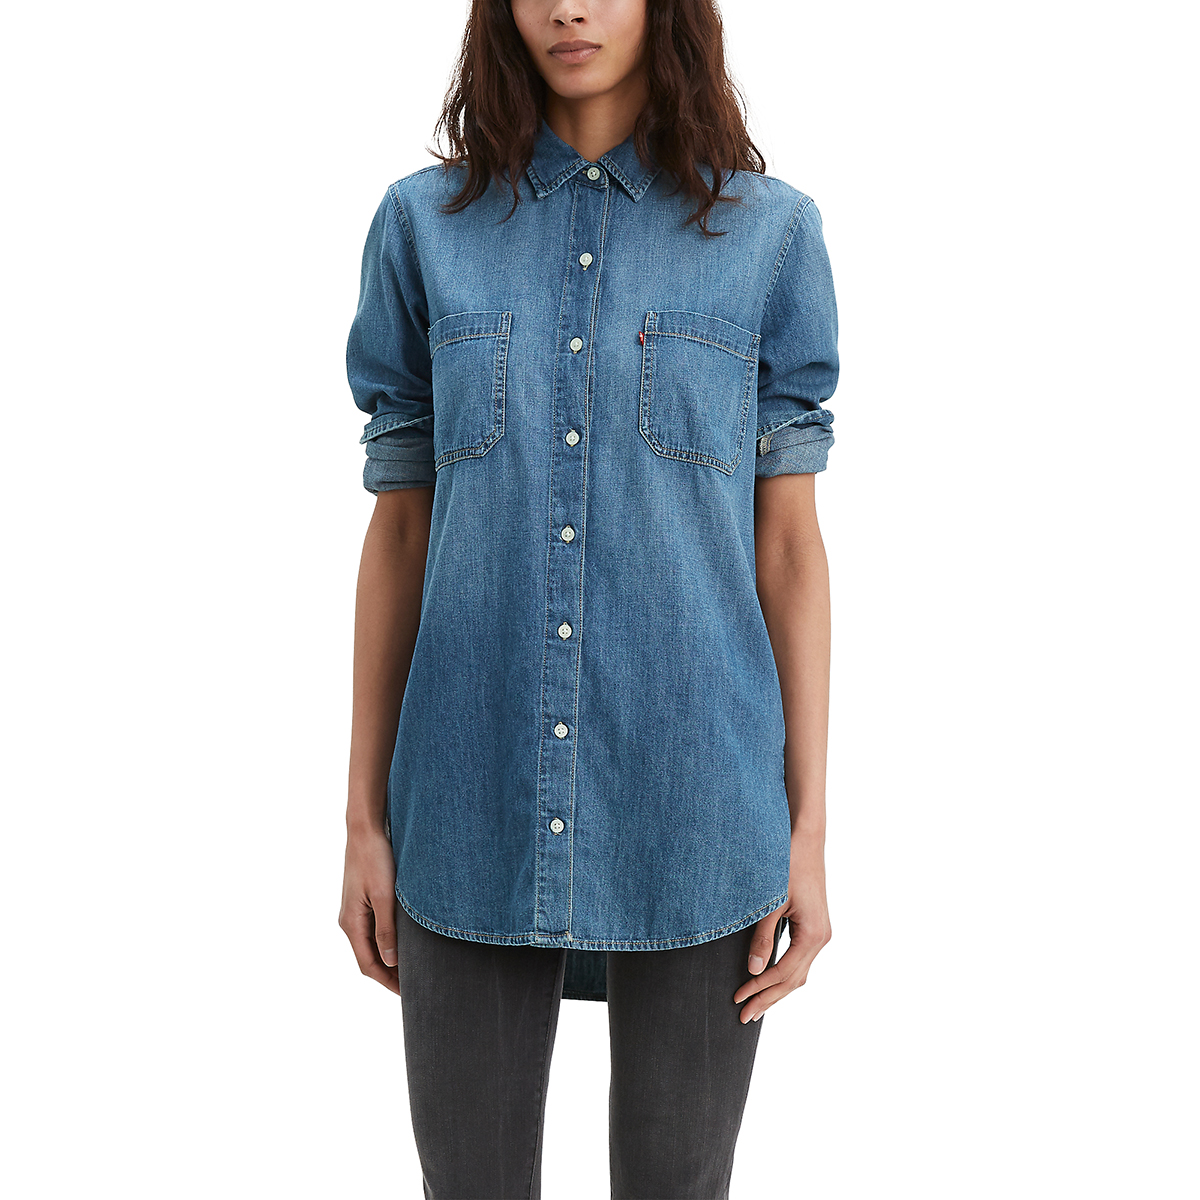 Levi's Women's Leni Long-Sleeve Tunic - Blue, S